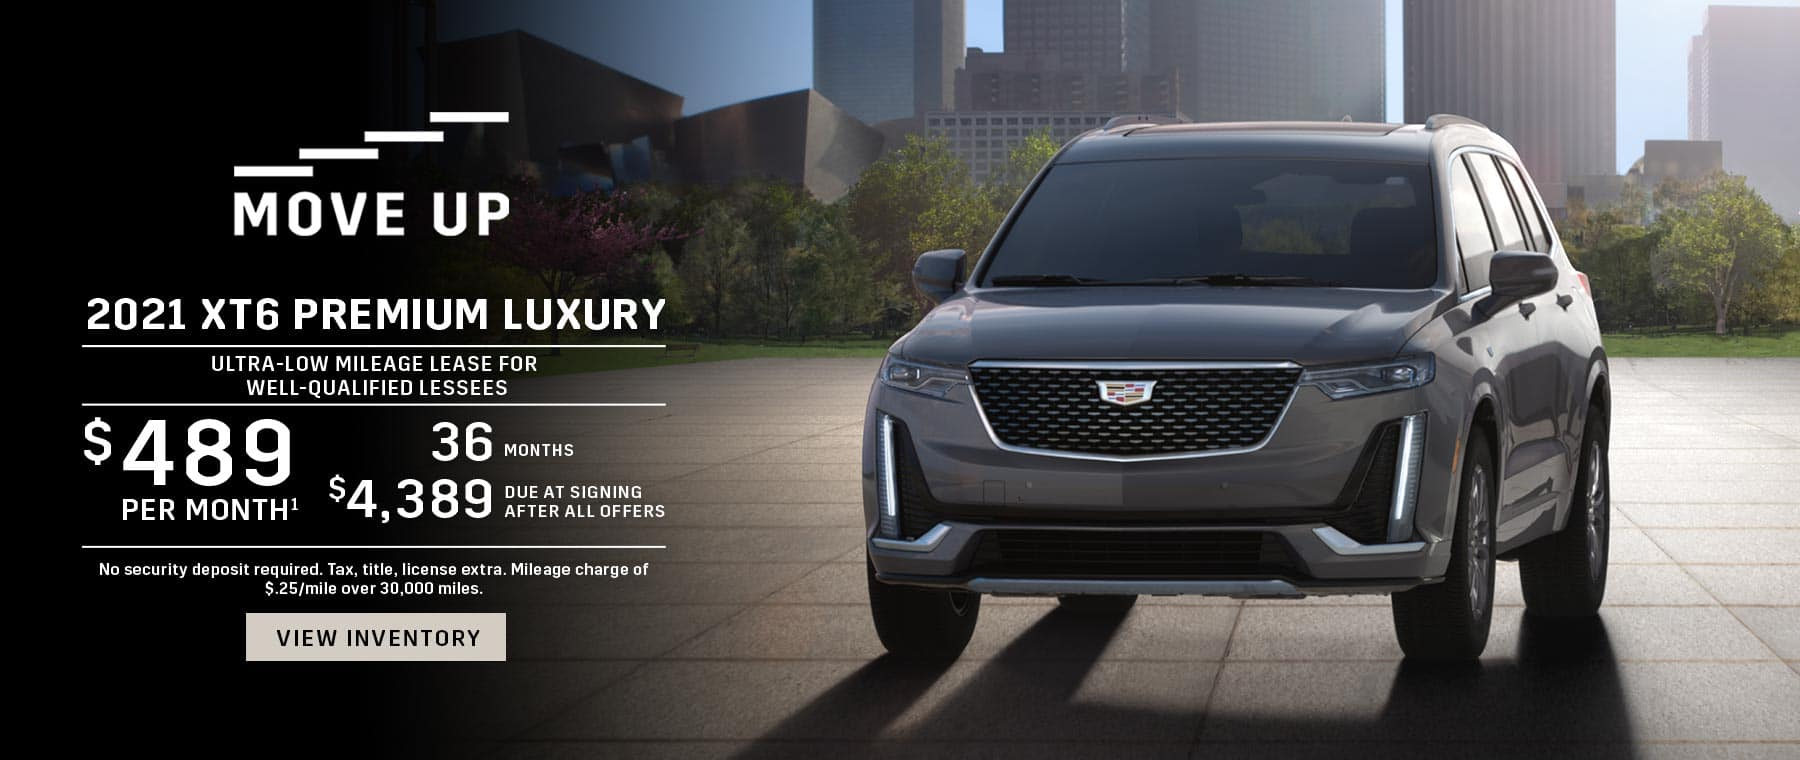 2021 Cadillac XT6 lease offer